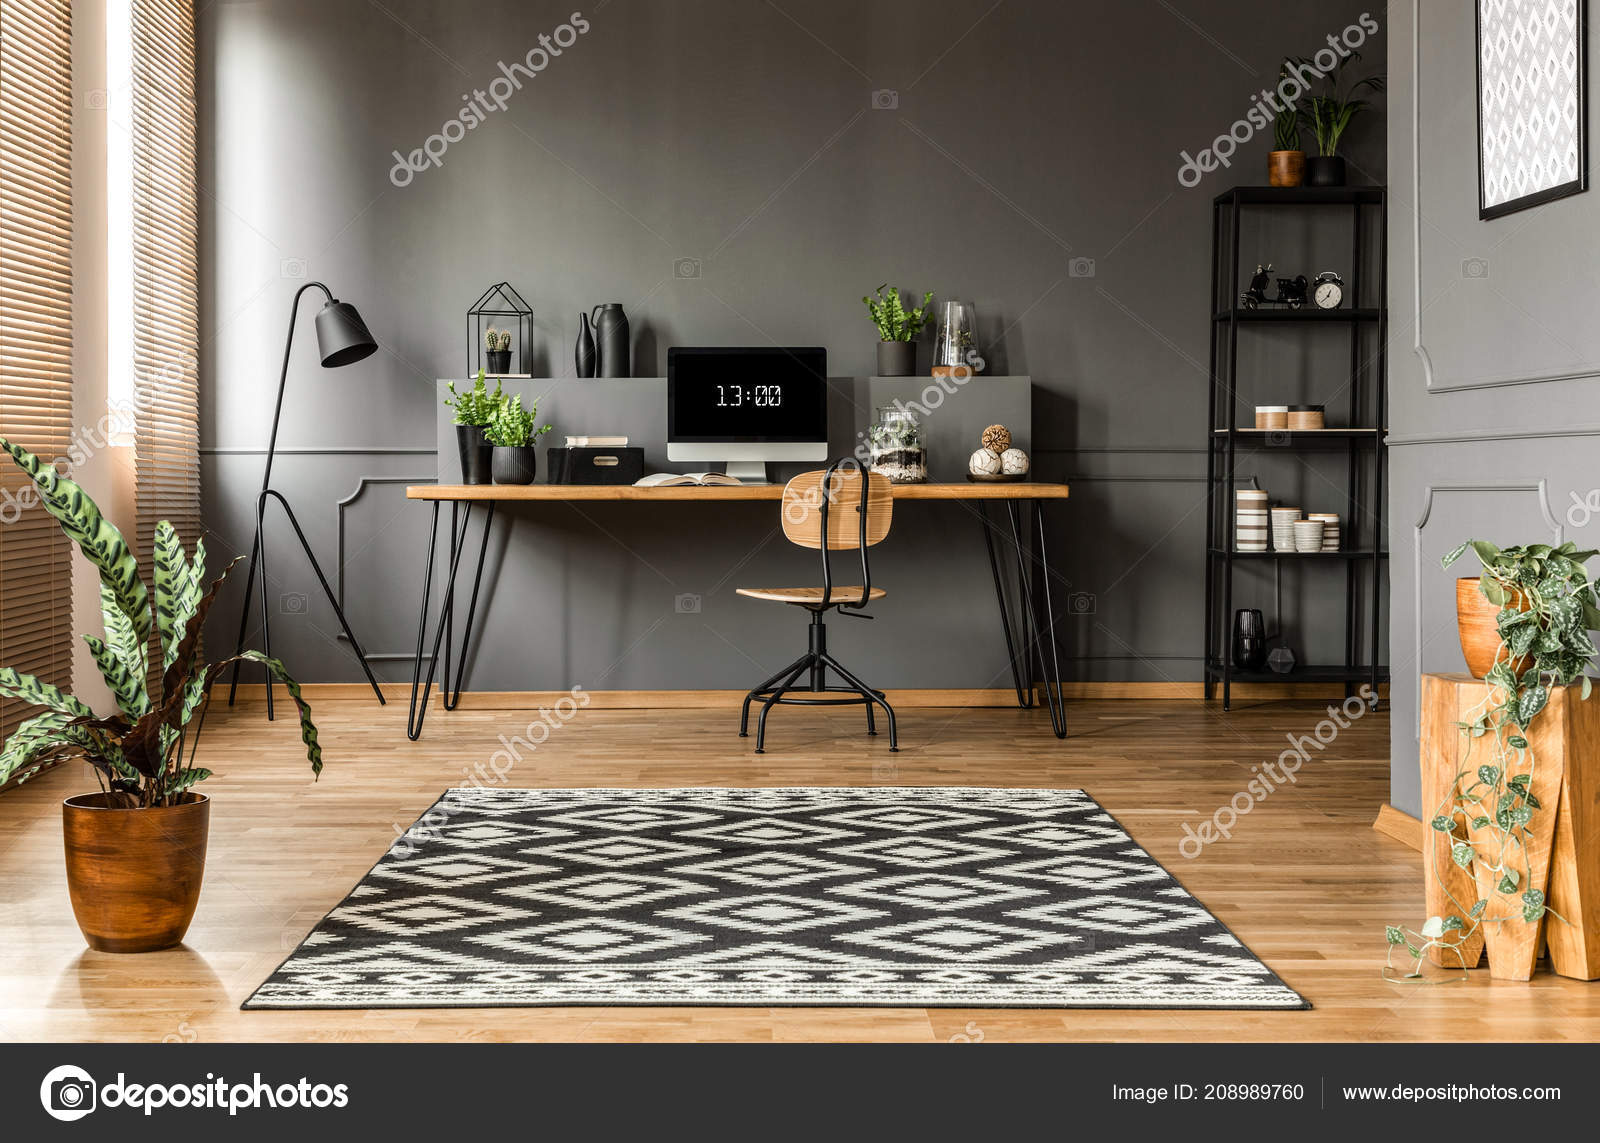 Patterned Carpet Plants Scandi Grey Home Office Interior Wooden Chair U2014  Stock Photo